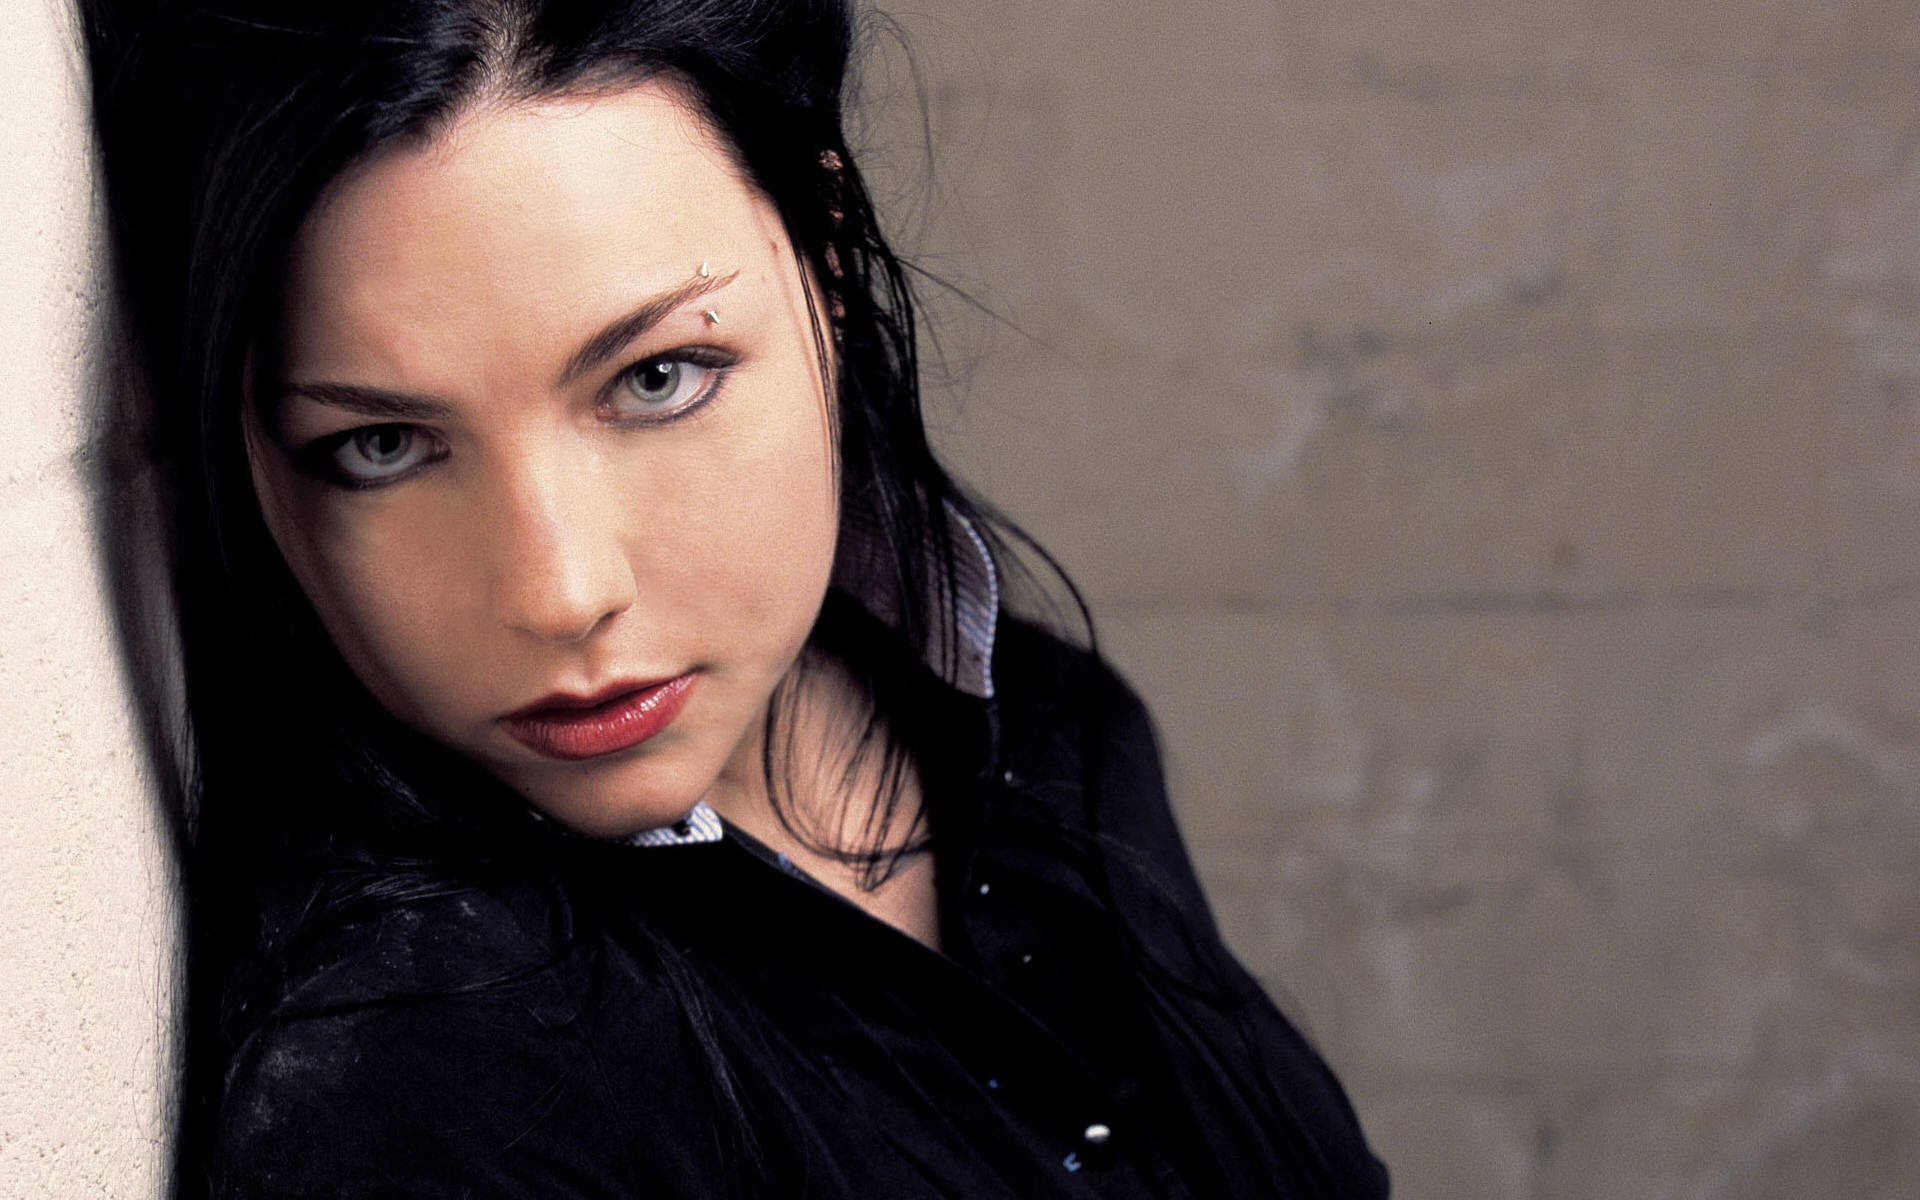 Amy Lee 392146 Full HD Widescreen wallpapers for 1920x1200